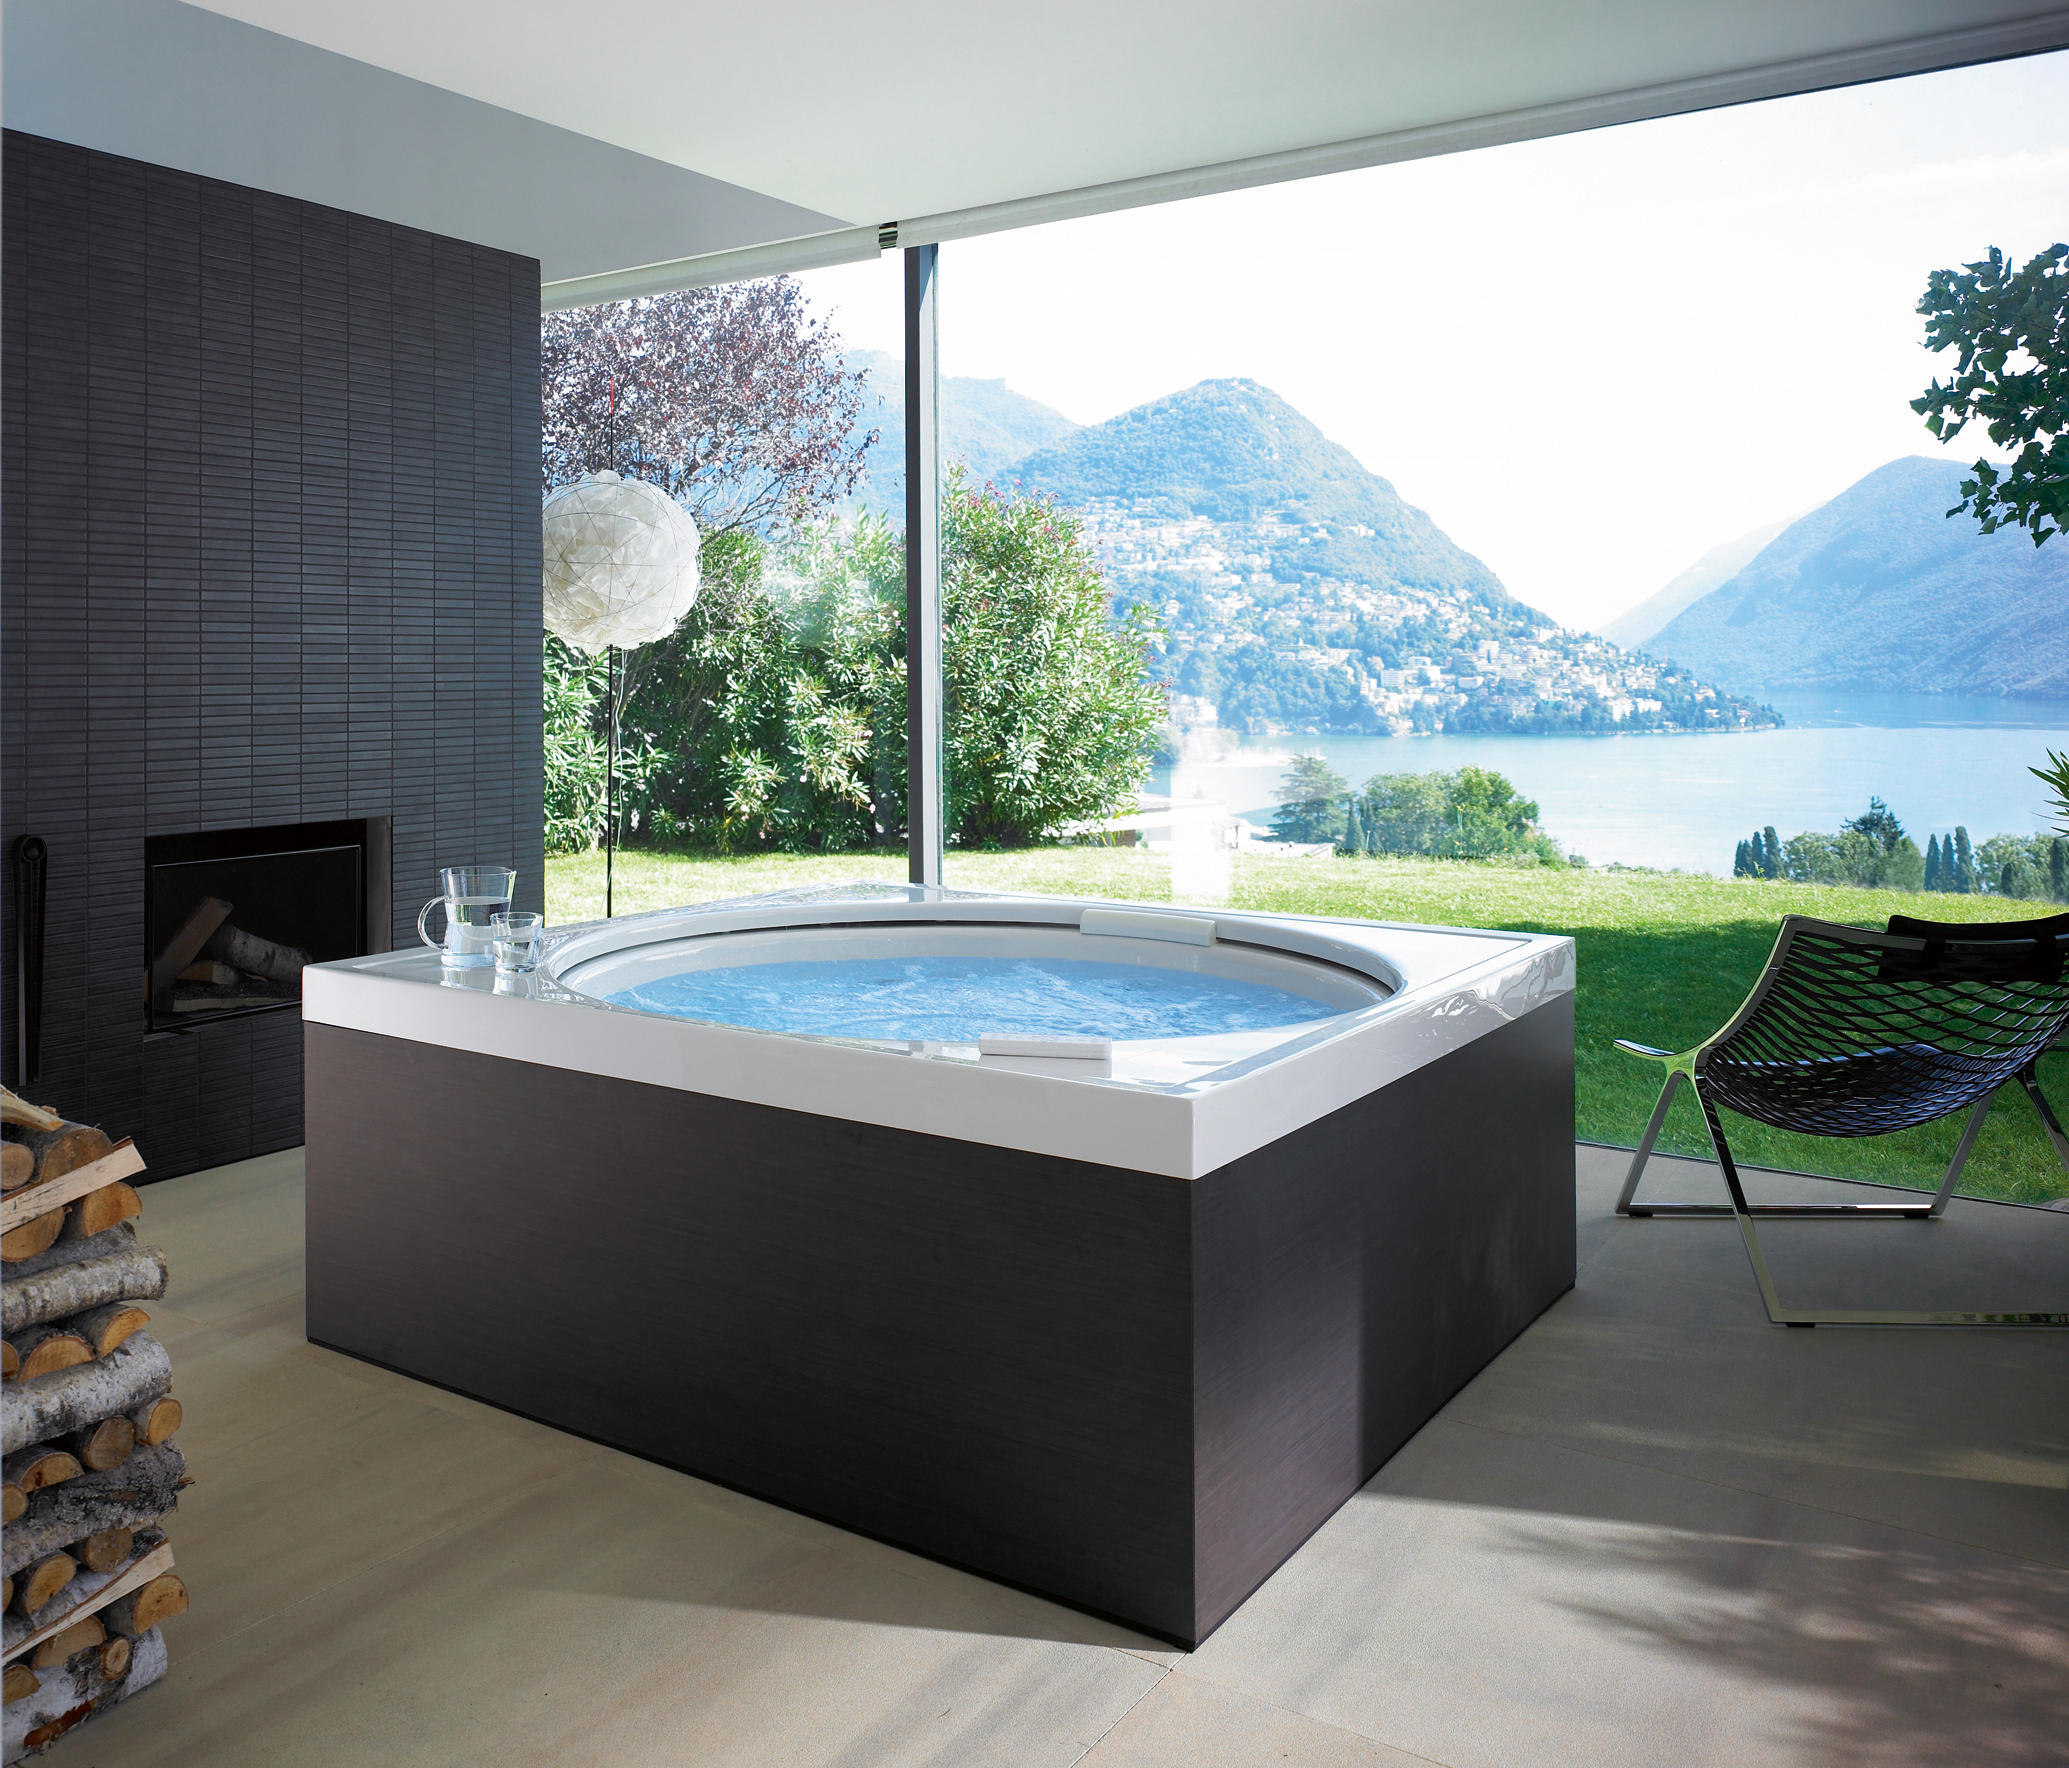 Blue Moon Pool Whirlwannen Von Duravit Architonic